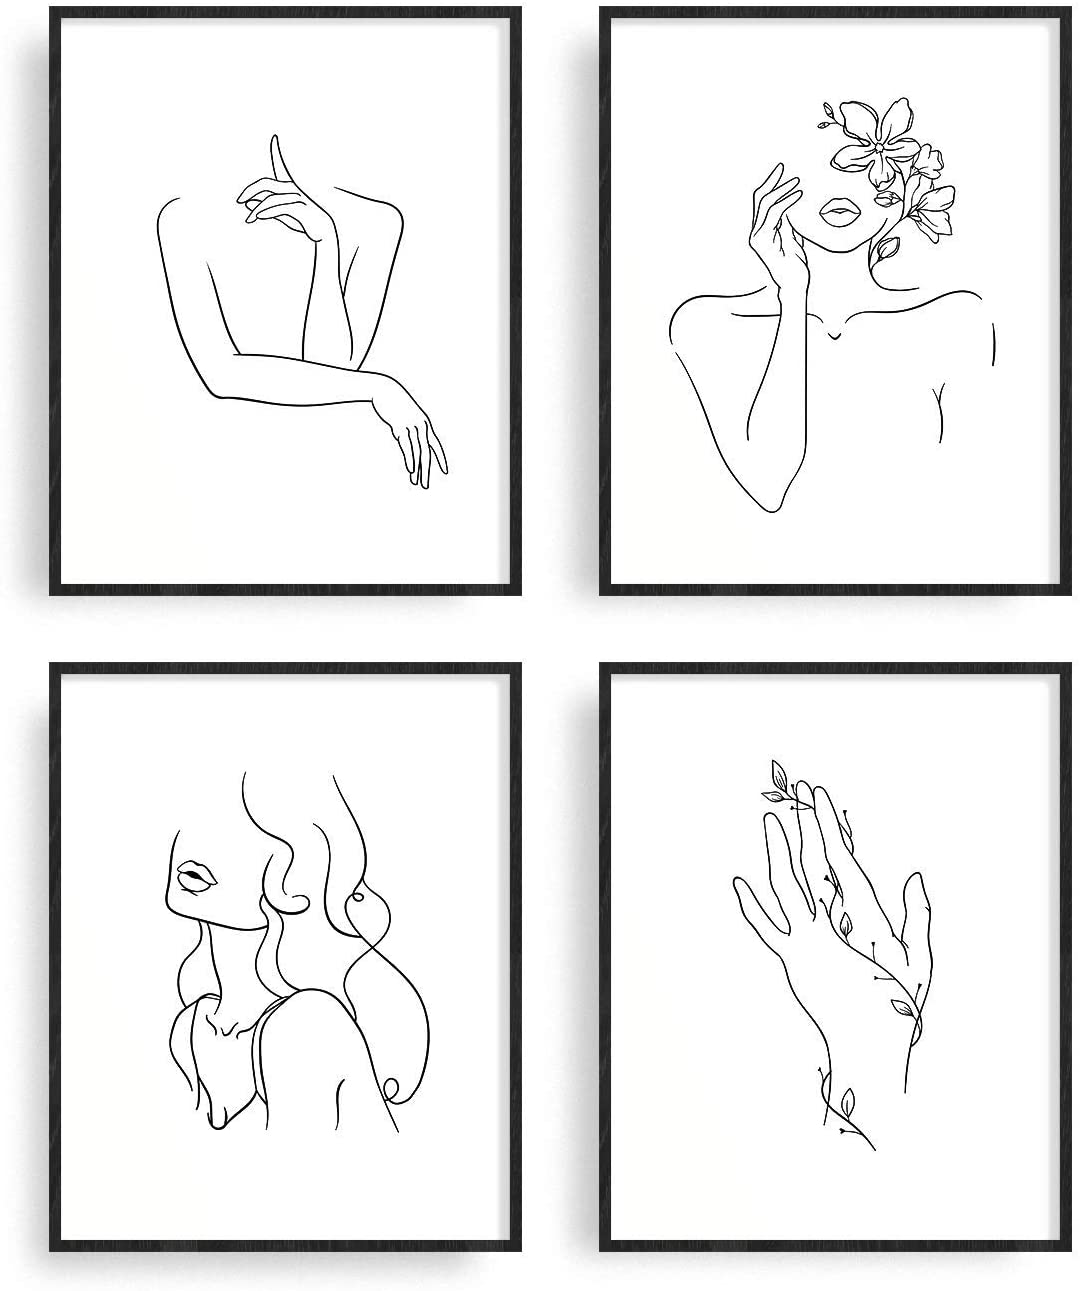 "Classier: Buy RipGrip Minimalist Line Art Prints Set of 4 By Carefree Bee | Aesthetic Art Posters | Wall Art Minimalist Painting | Minimal Wall Art | Drawing Poster | Black/White Prints | Unframed (8"" x 10"")"